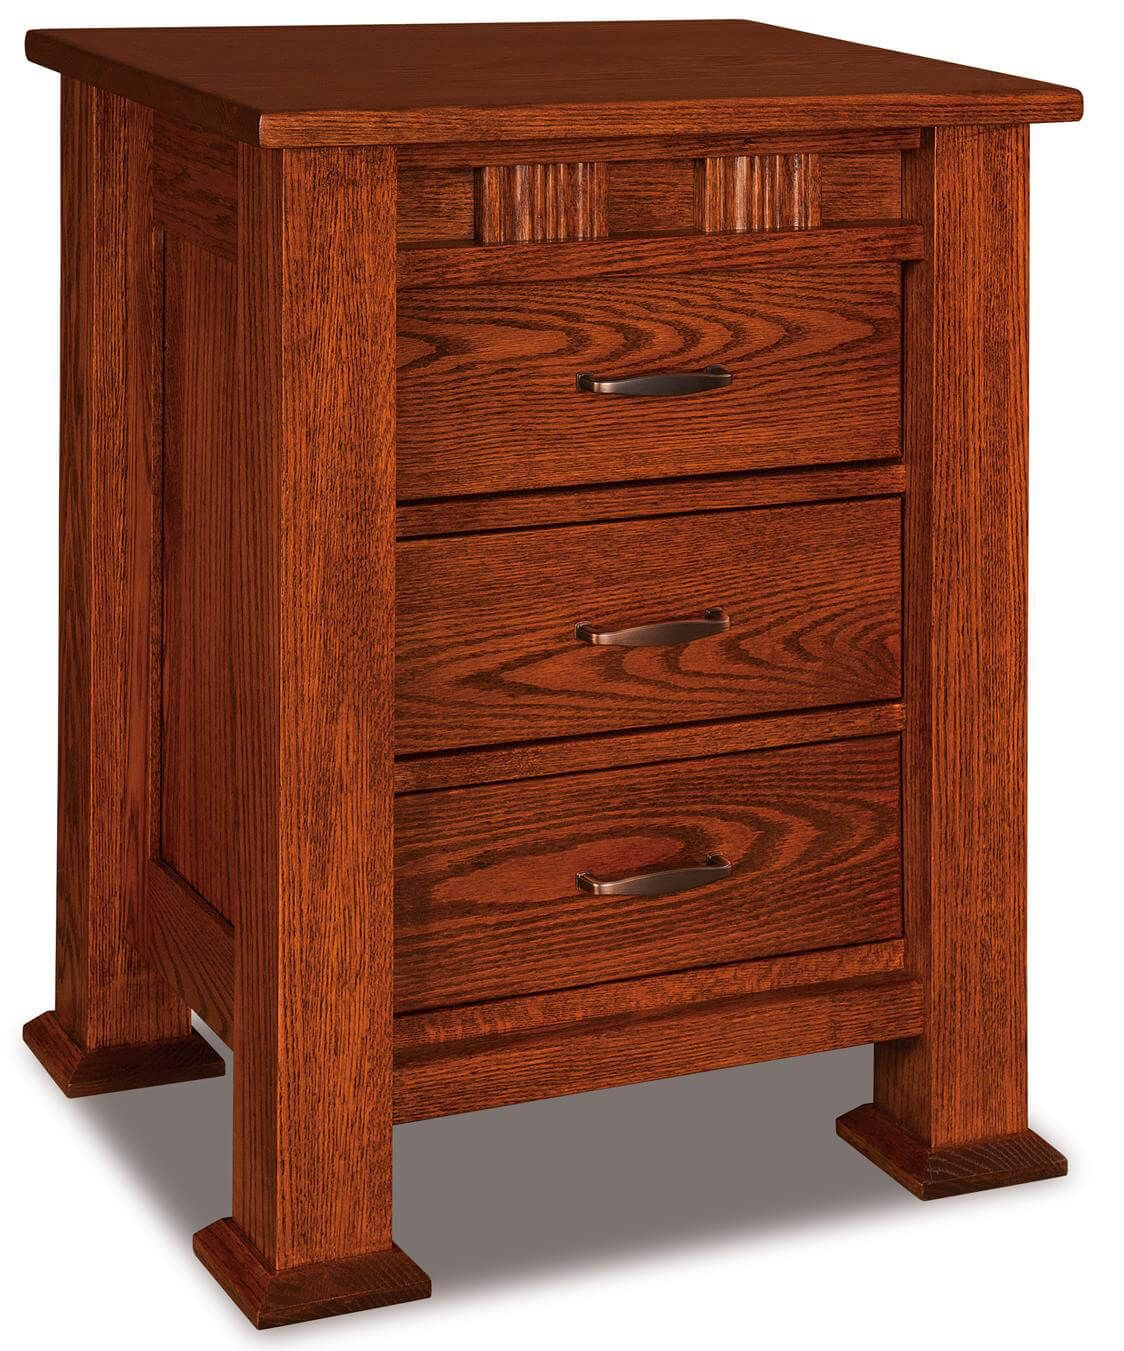 Tuskegee 3-Drawer Nightstand